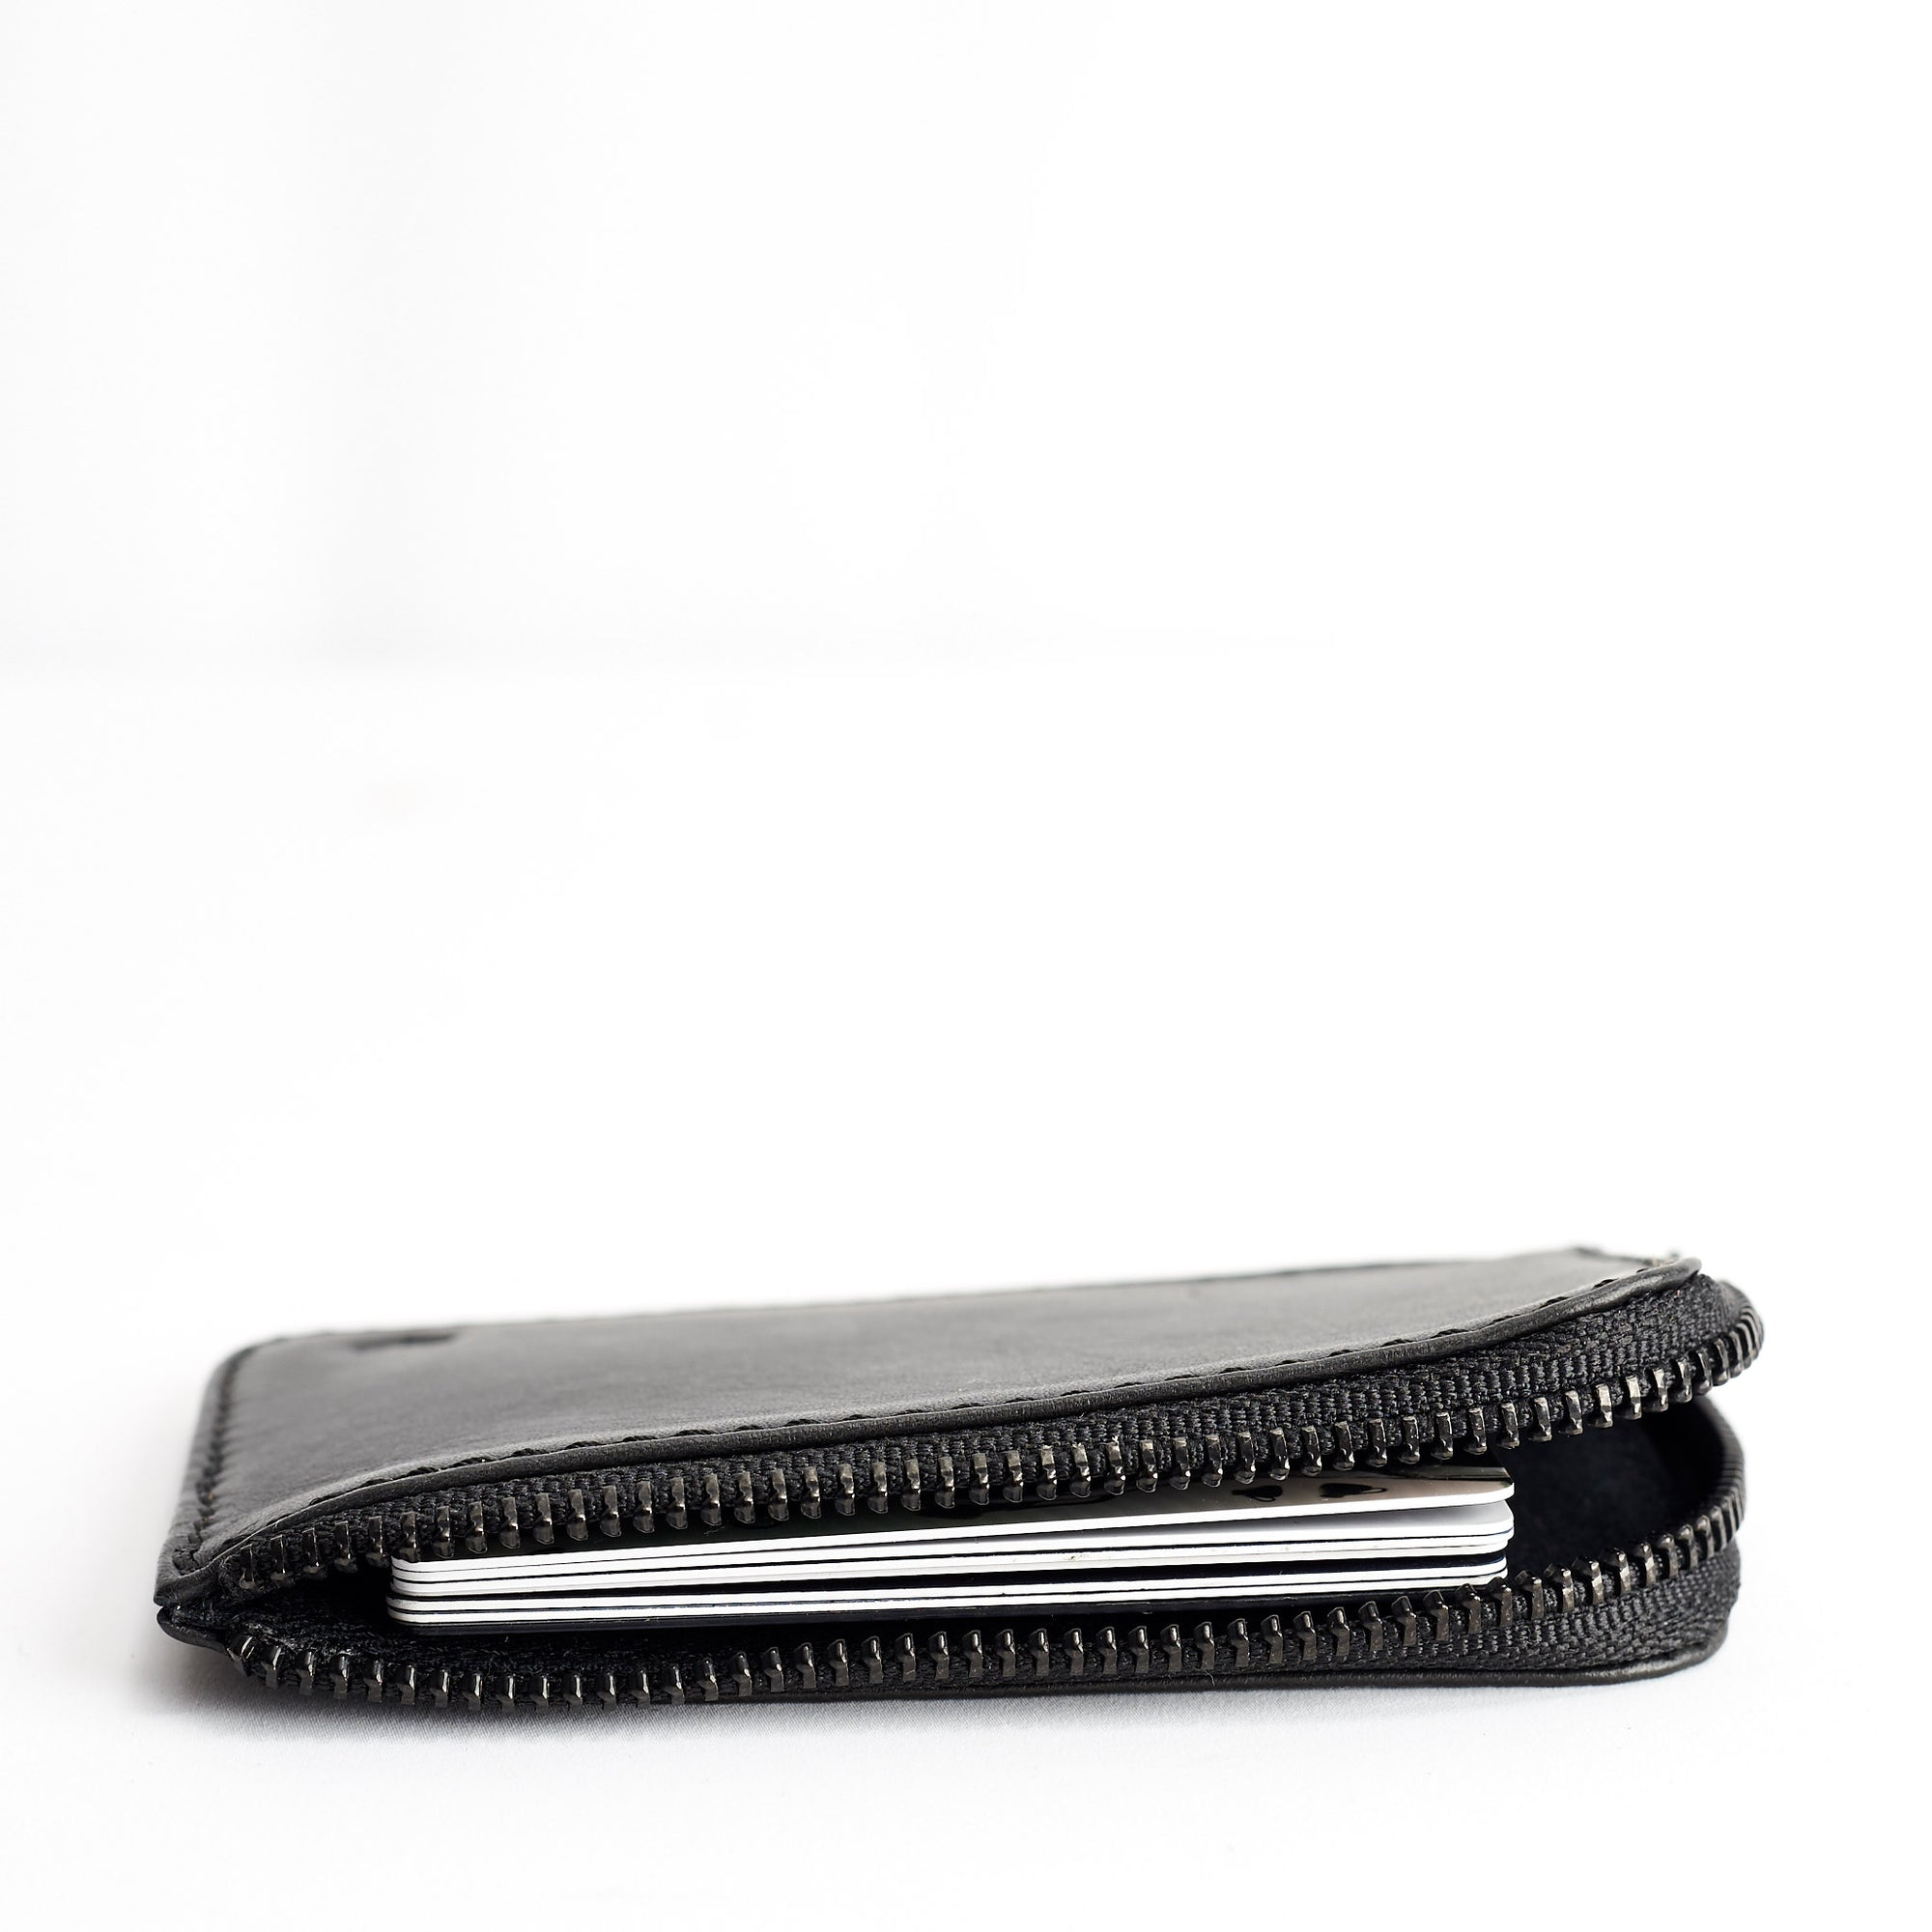 Handmade Zipper Card Holder · Black by Capra Leather